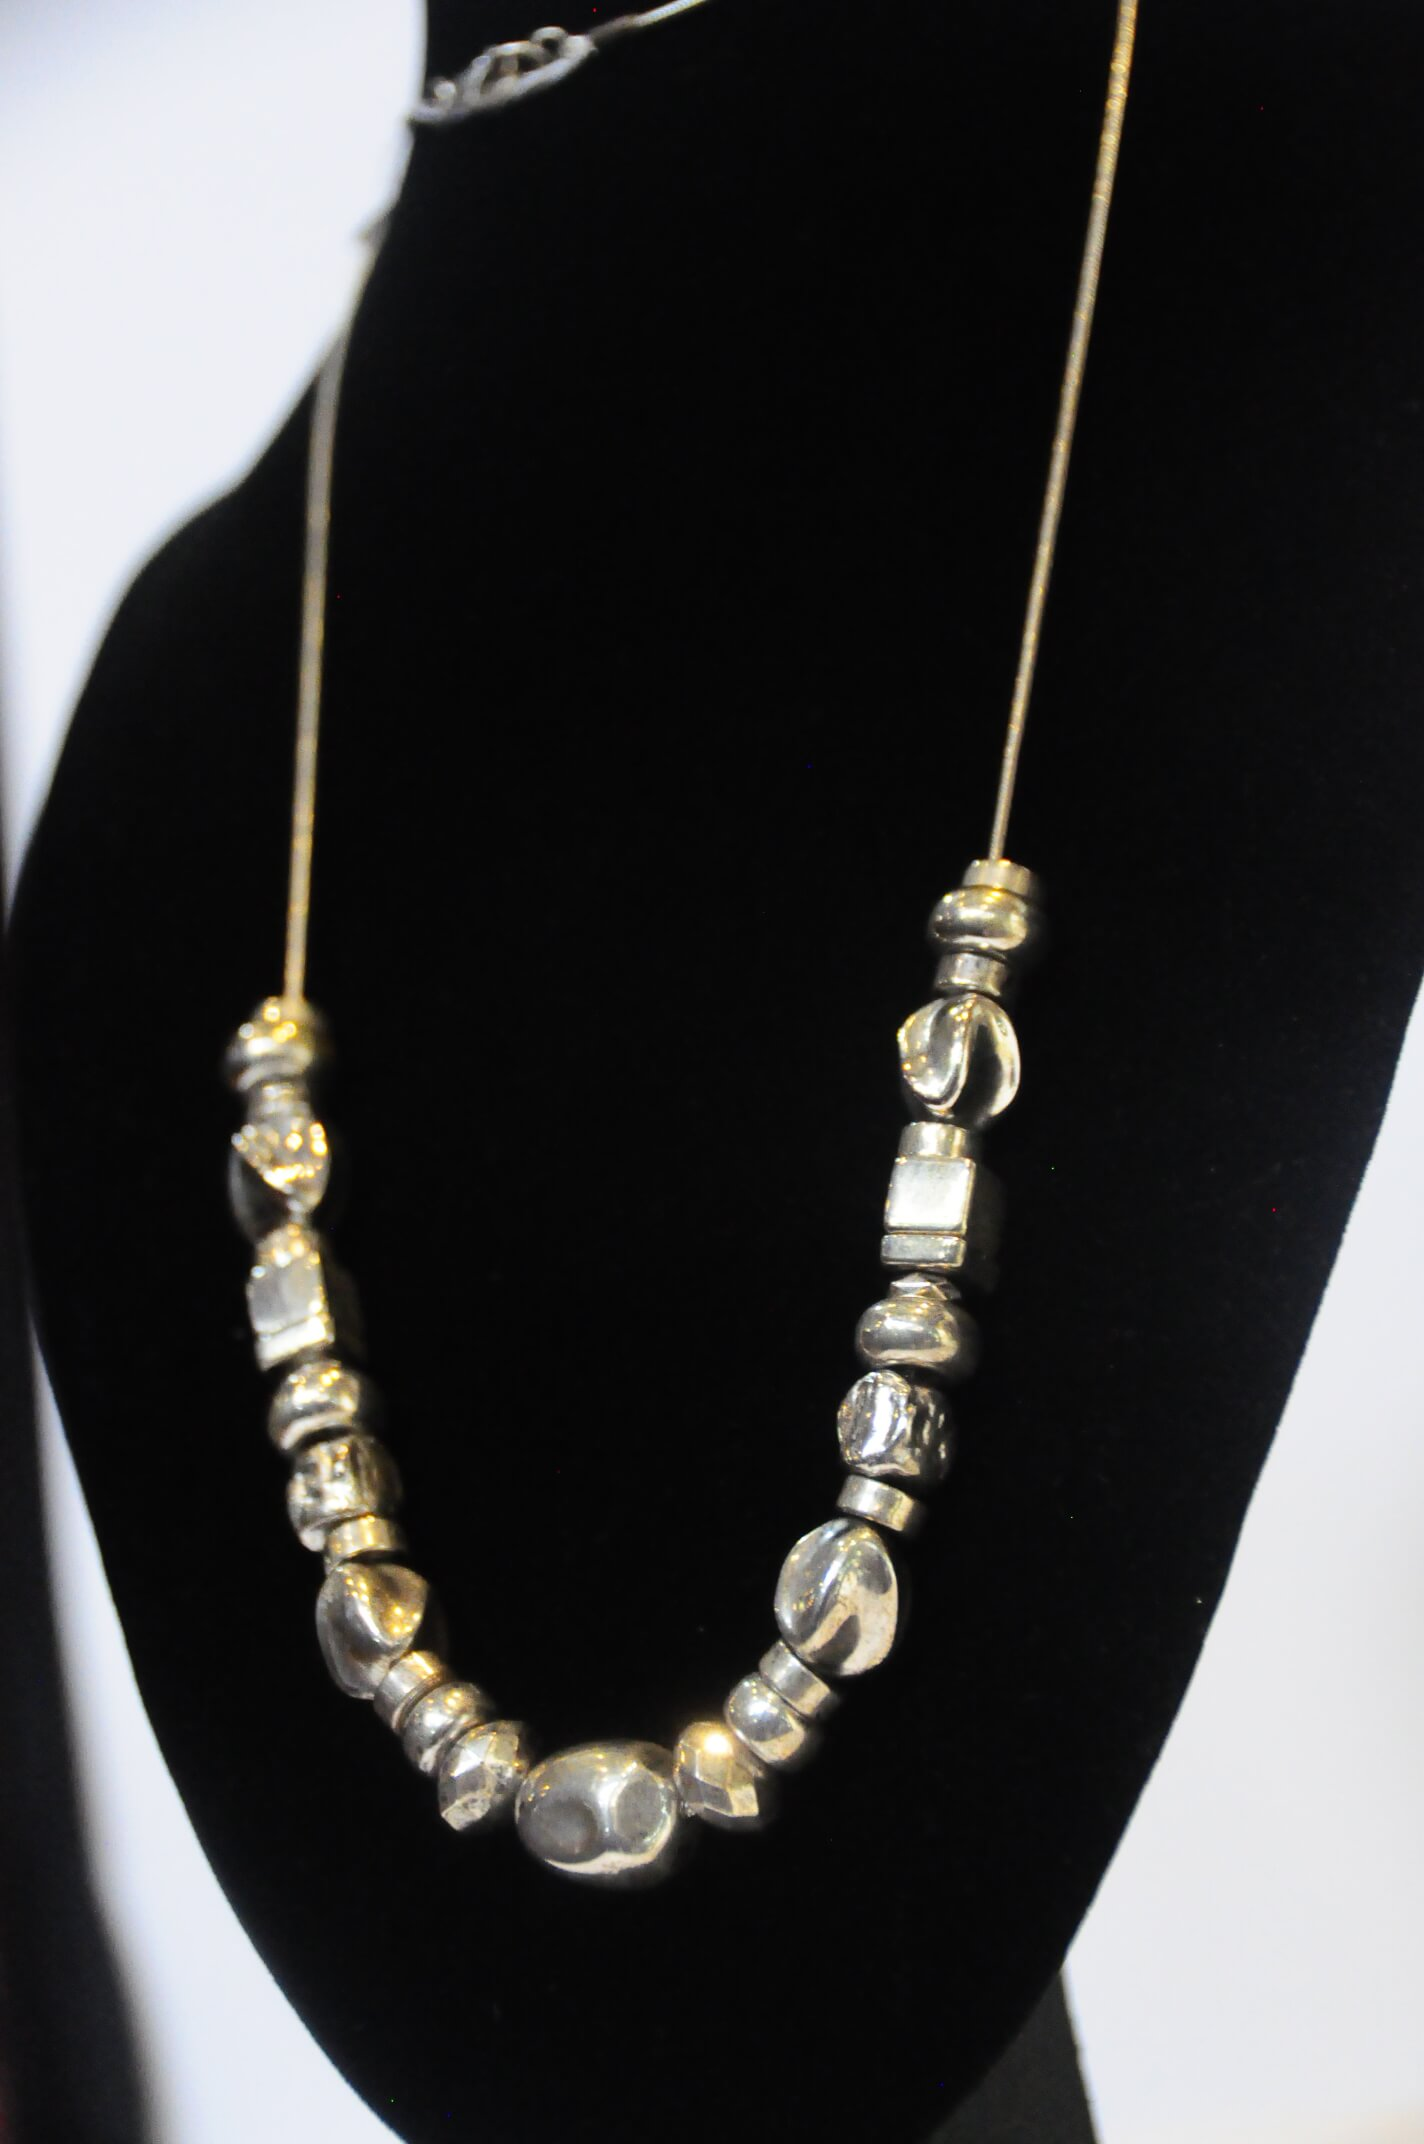 Jewelry Necklace Silver Assorted Silver Beads 28L 36.3g